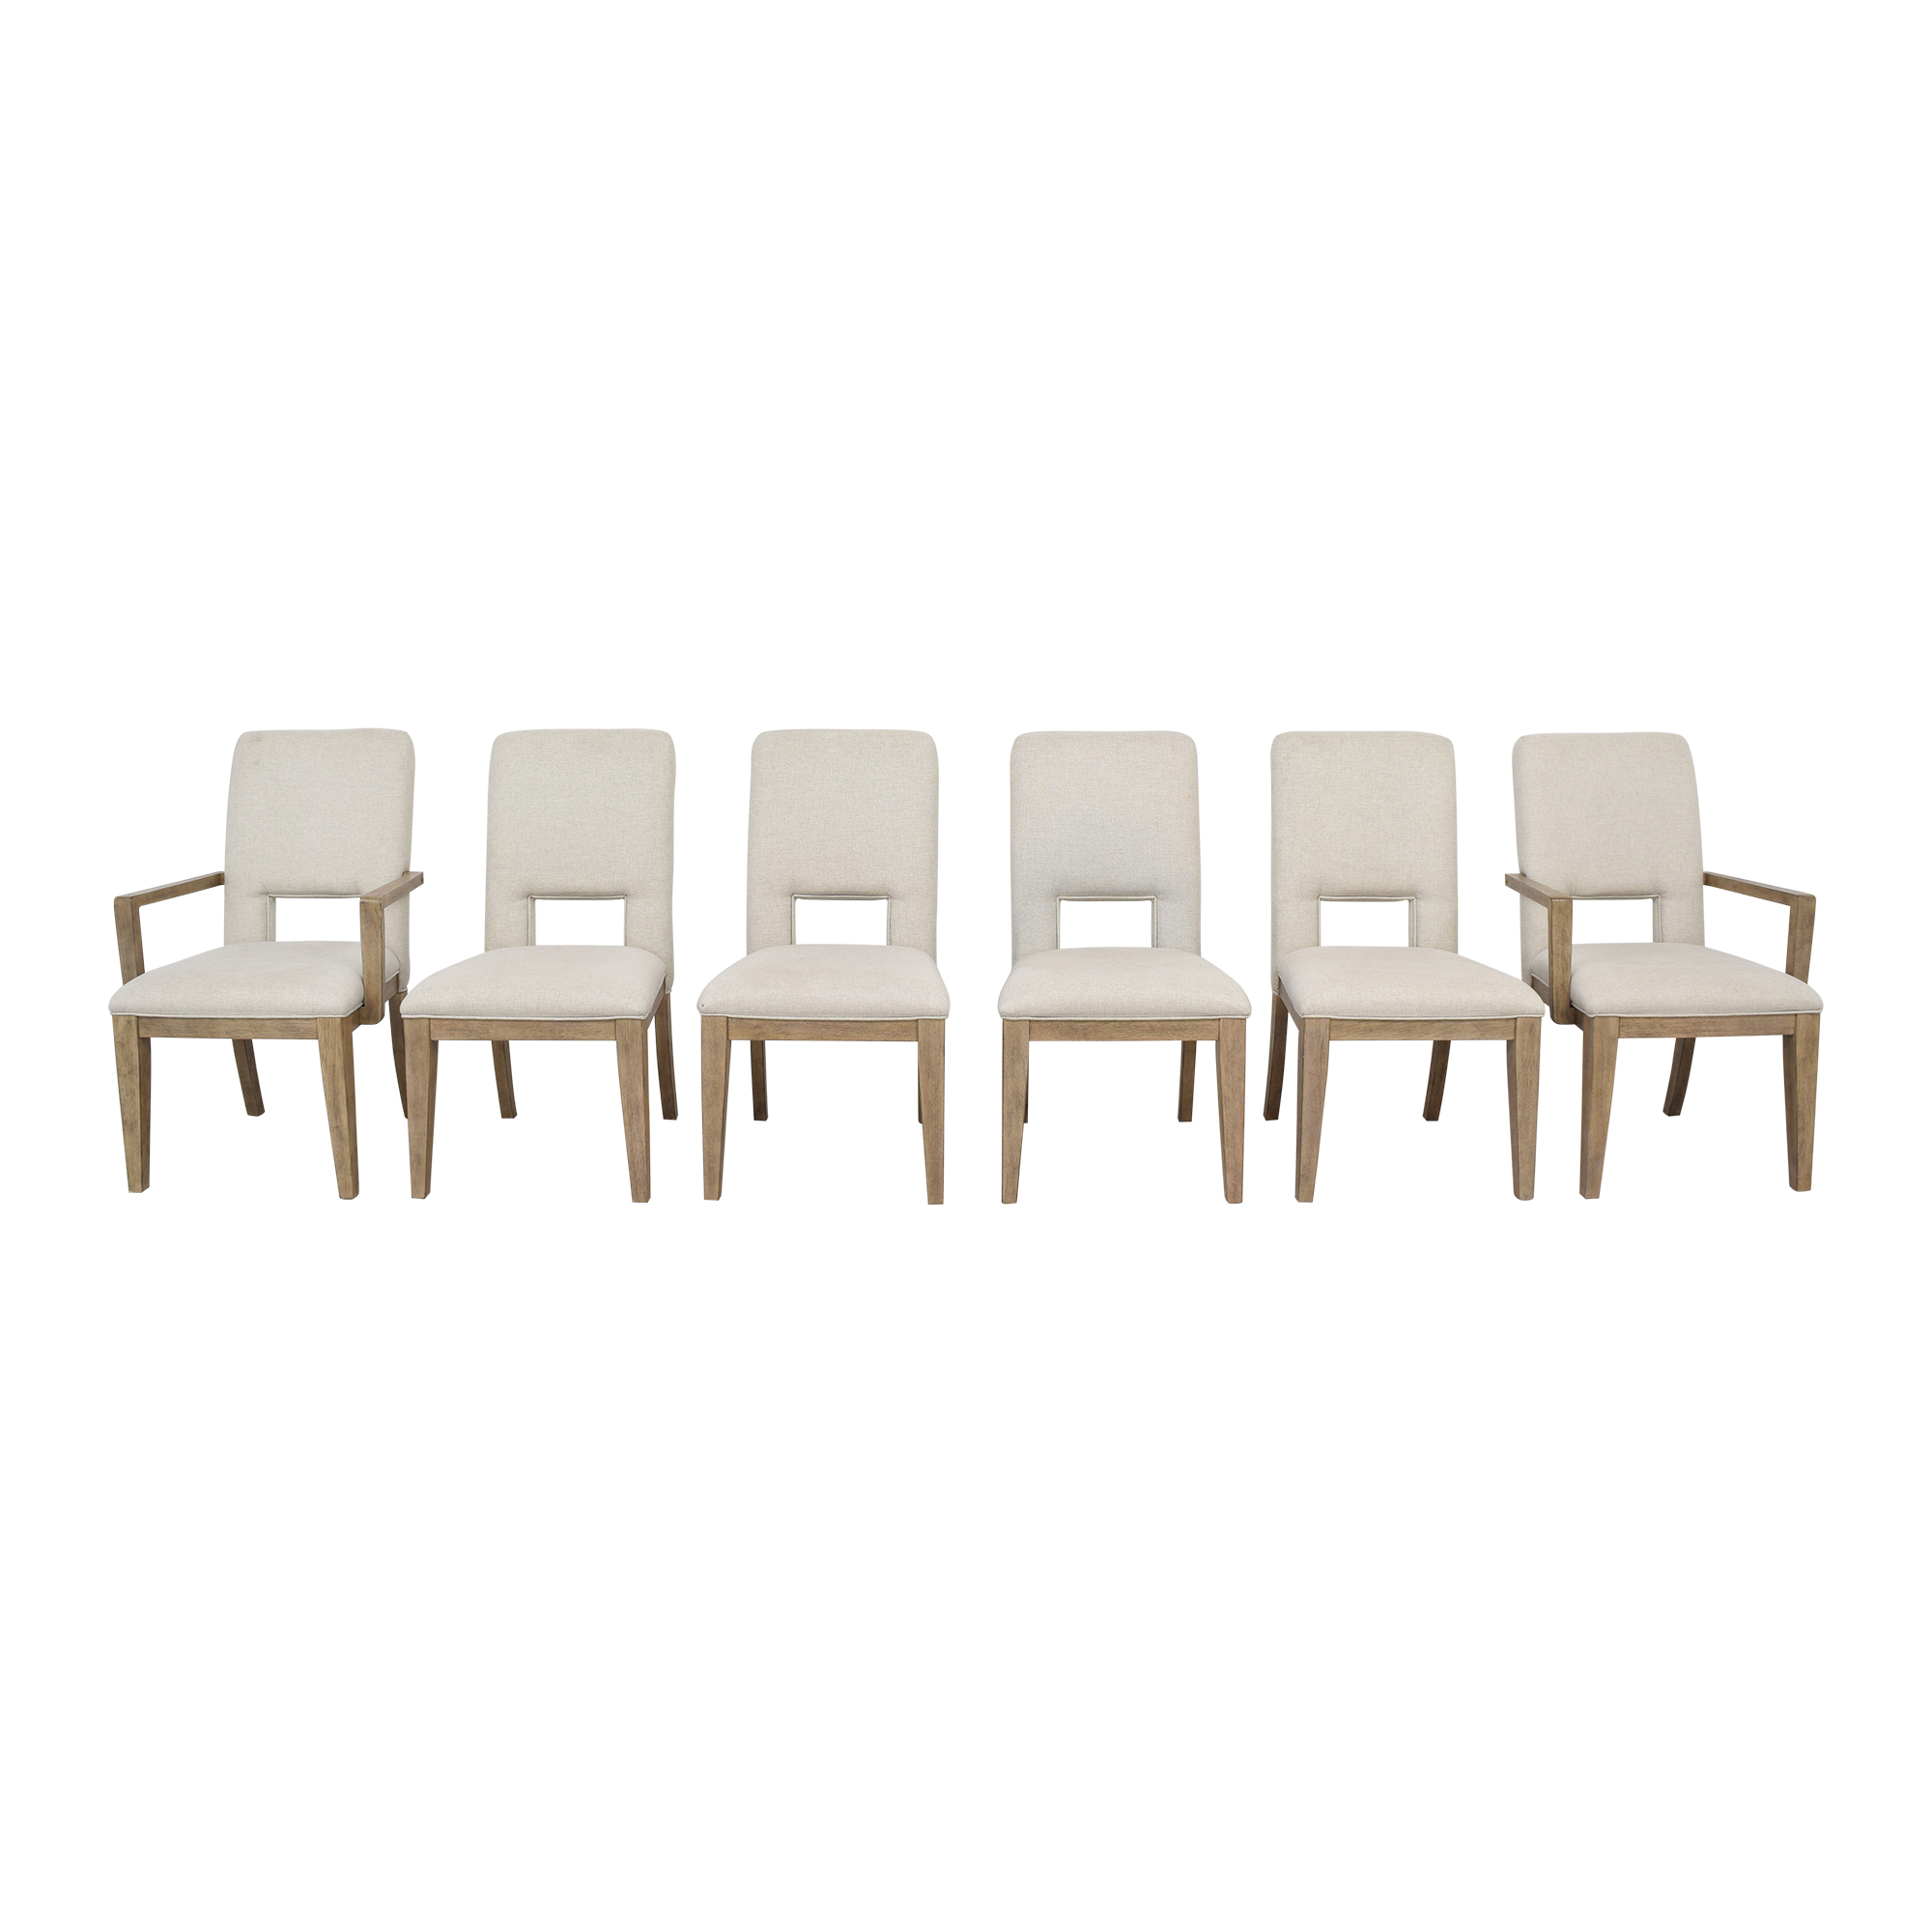 Macy's Macy's Altair Dining Chairs price